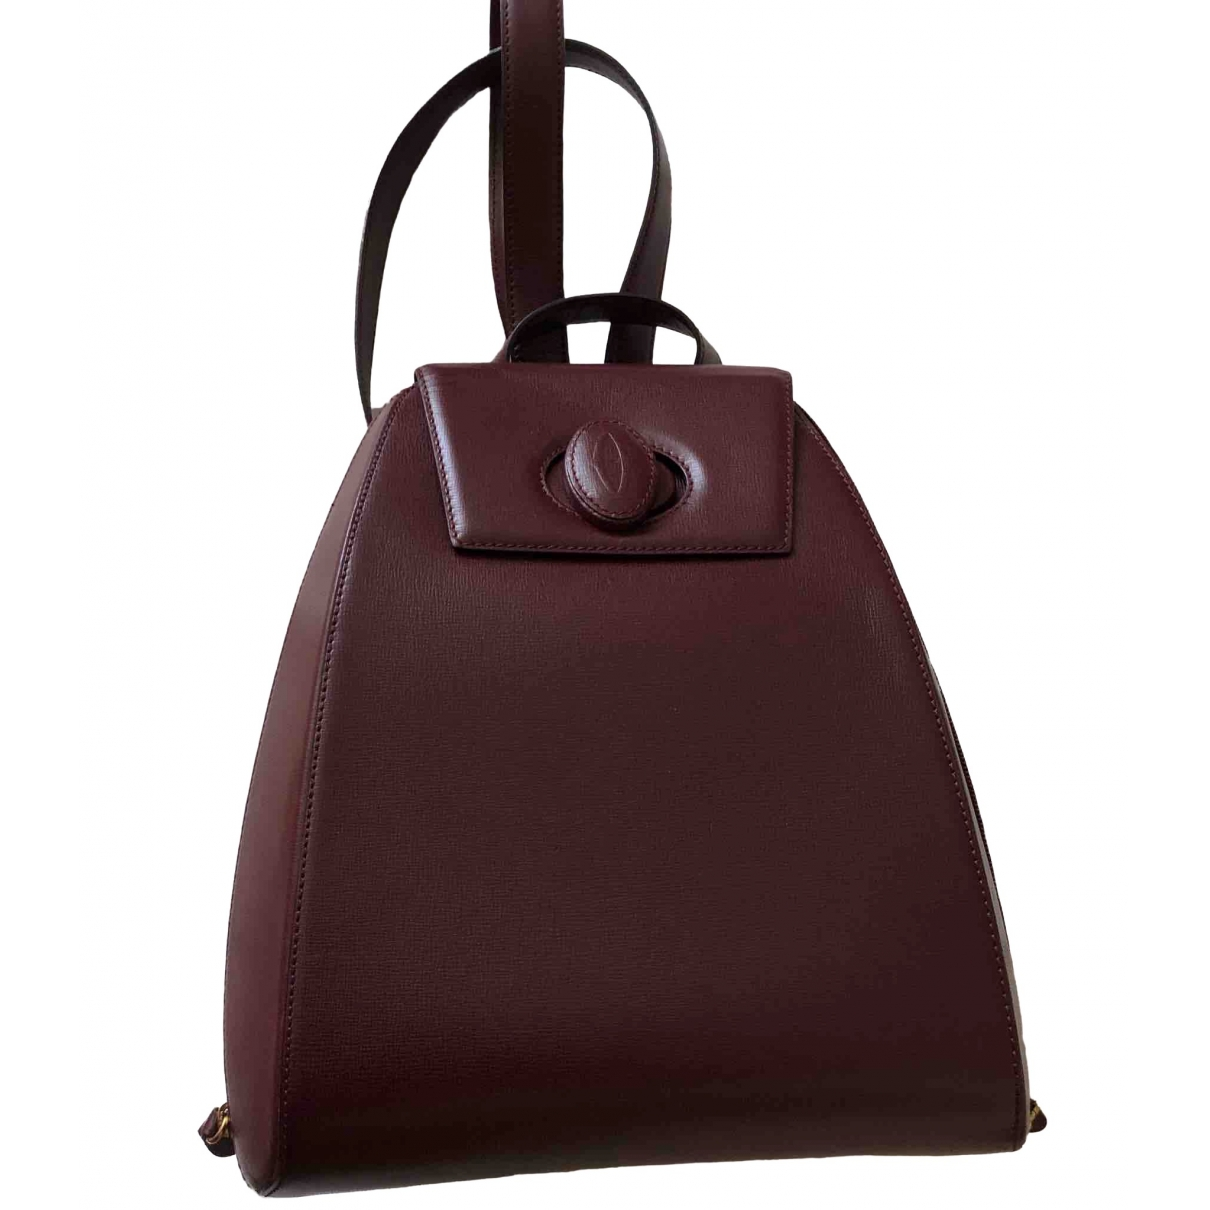 Cartier \N Burgundy Leather backpack for Women \N